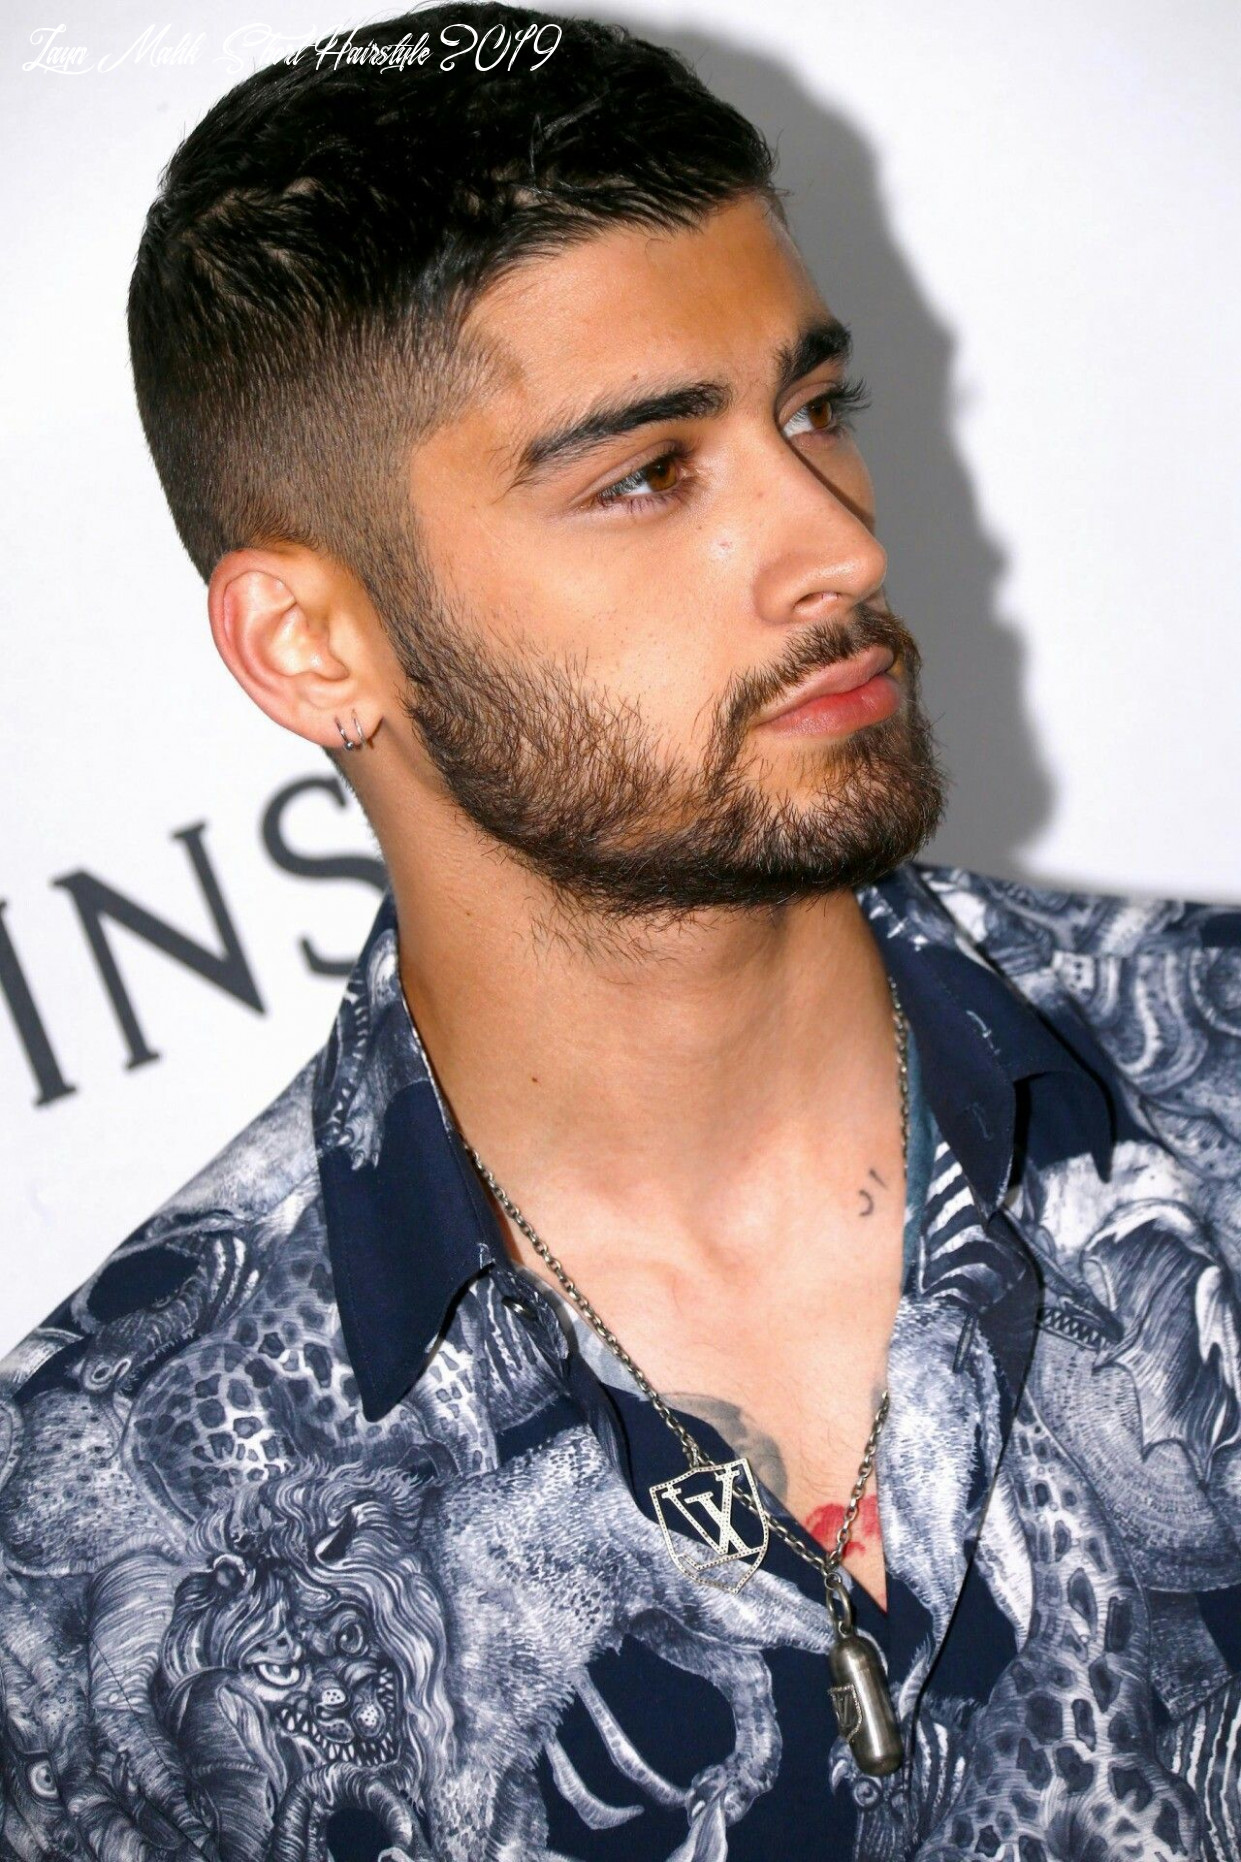 Short hair/beard | haircuts for men, zayn malik style zayn malik short hairstyle 2019